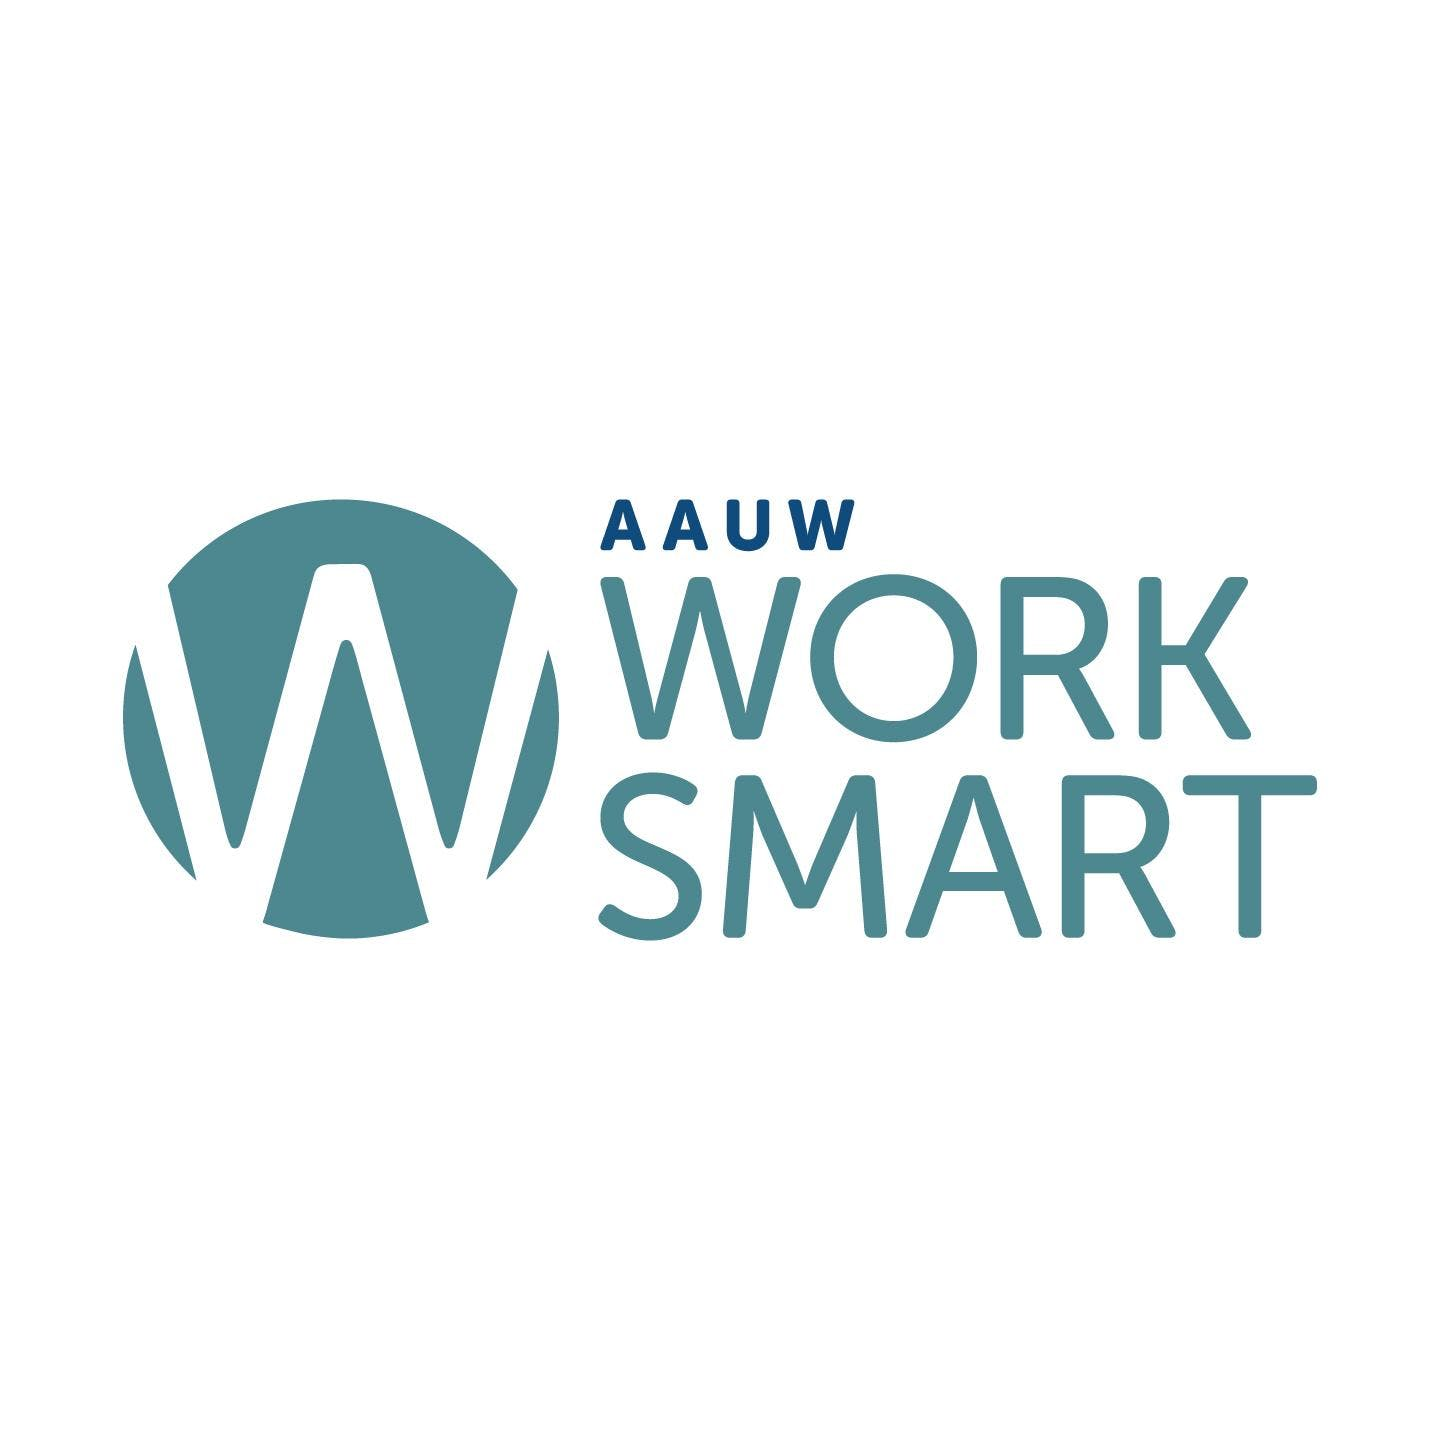 AAUW Work Smart in ATL at the Center for Civi